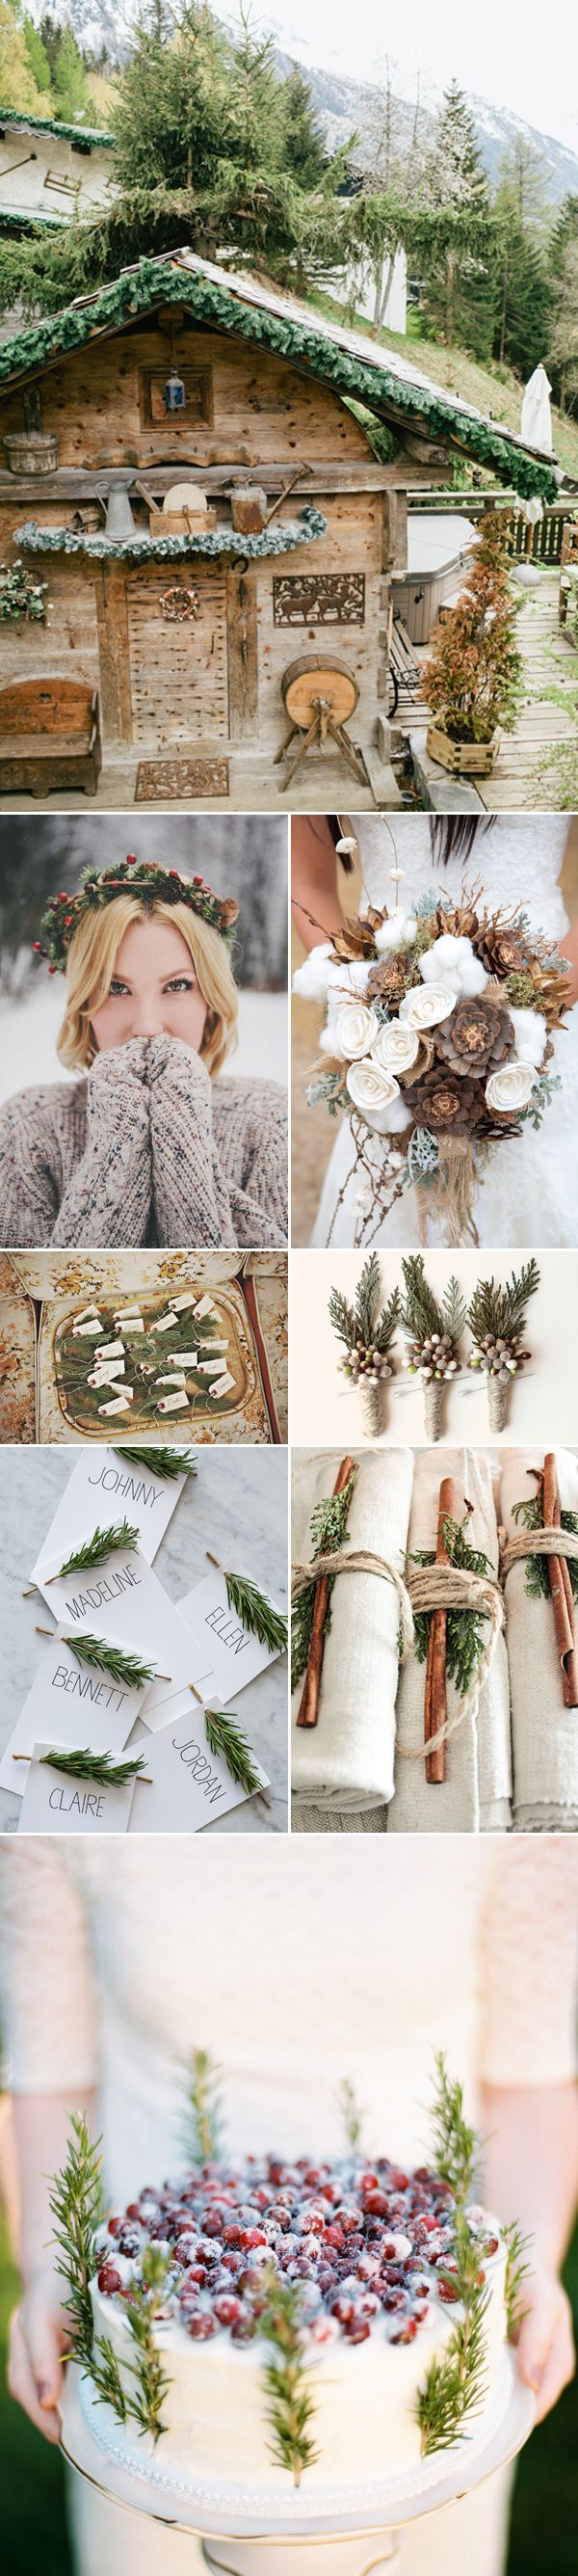 Rustic Mountain Winter Wedding Ideas and Inspiration | via junebugweddings - my ideal wedding would be similar ;o)